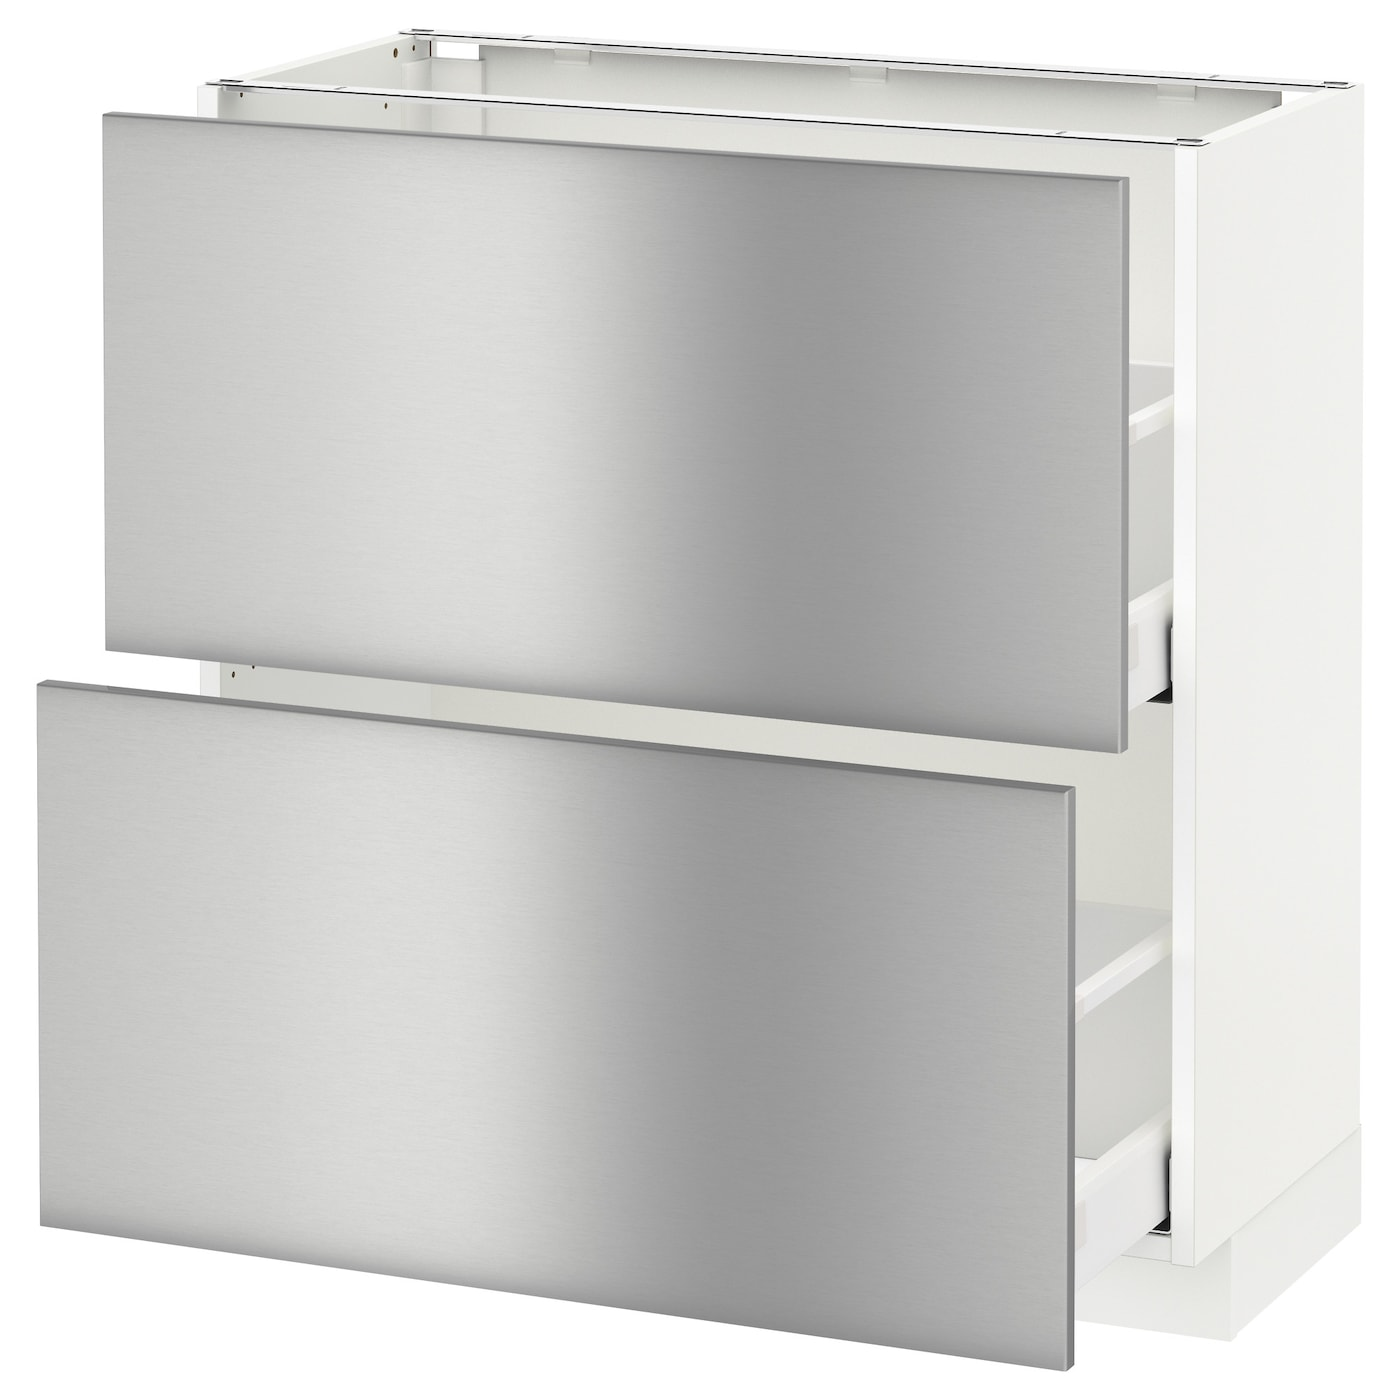 Stainless Kitchen Cabinet: METOD/MAXIMERA Base Cabinet With 2 Drawers White/grevsta